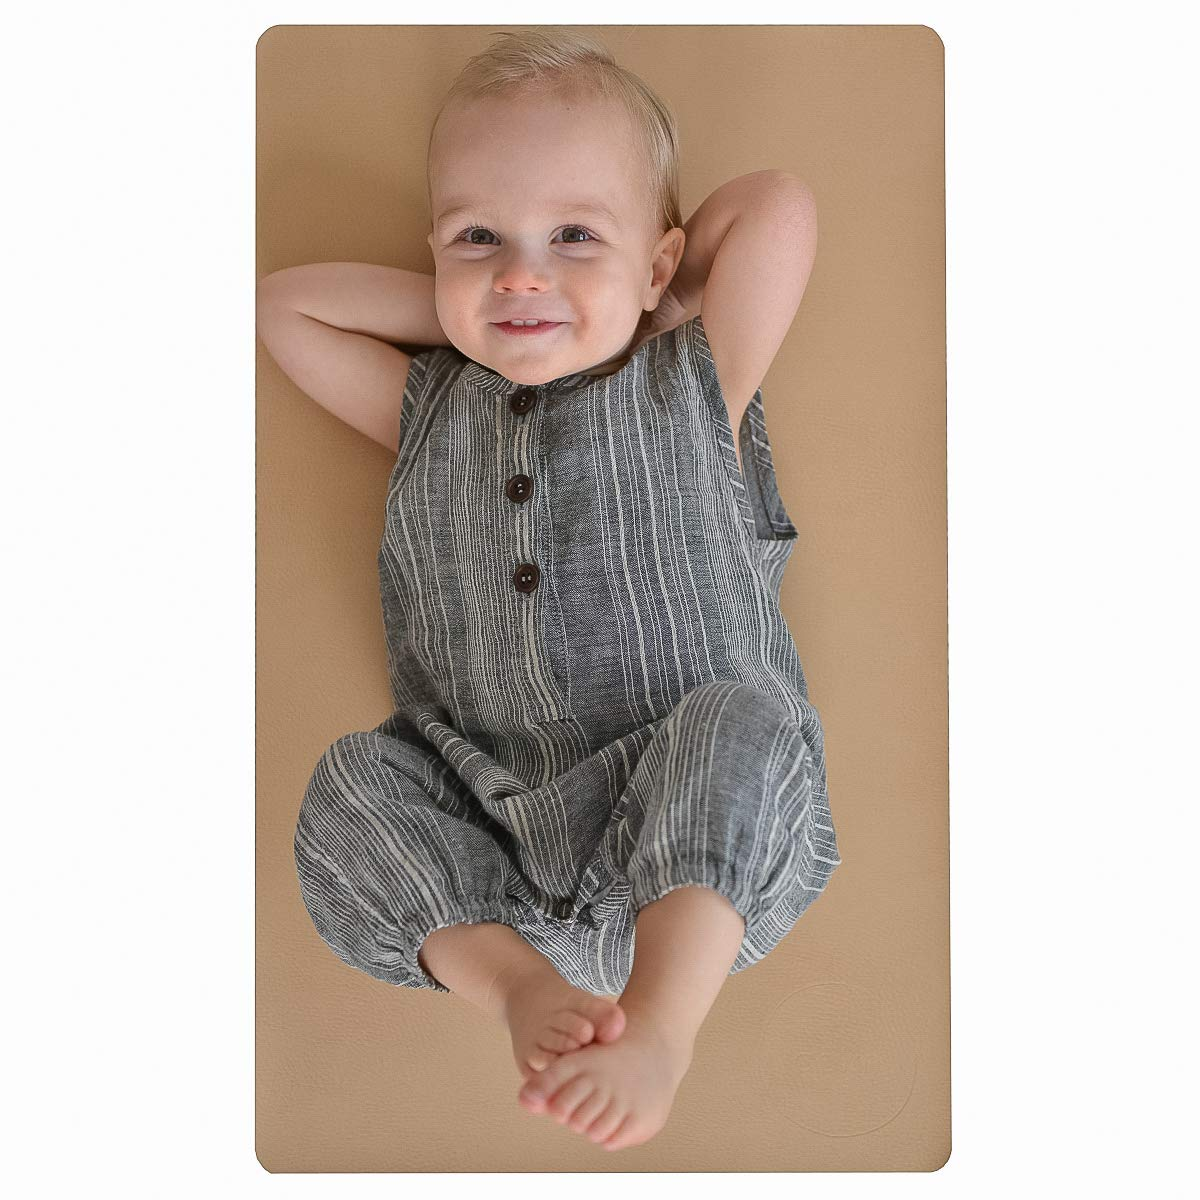 Leather Baby Diaper Changing Mat - Portable, Wipeable & Reusable Pad Liner - Large Size - Premium Quality by Cairn Co. by Cairn Co.